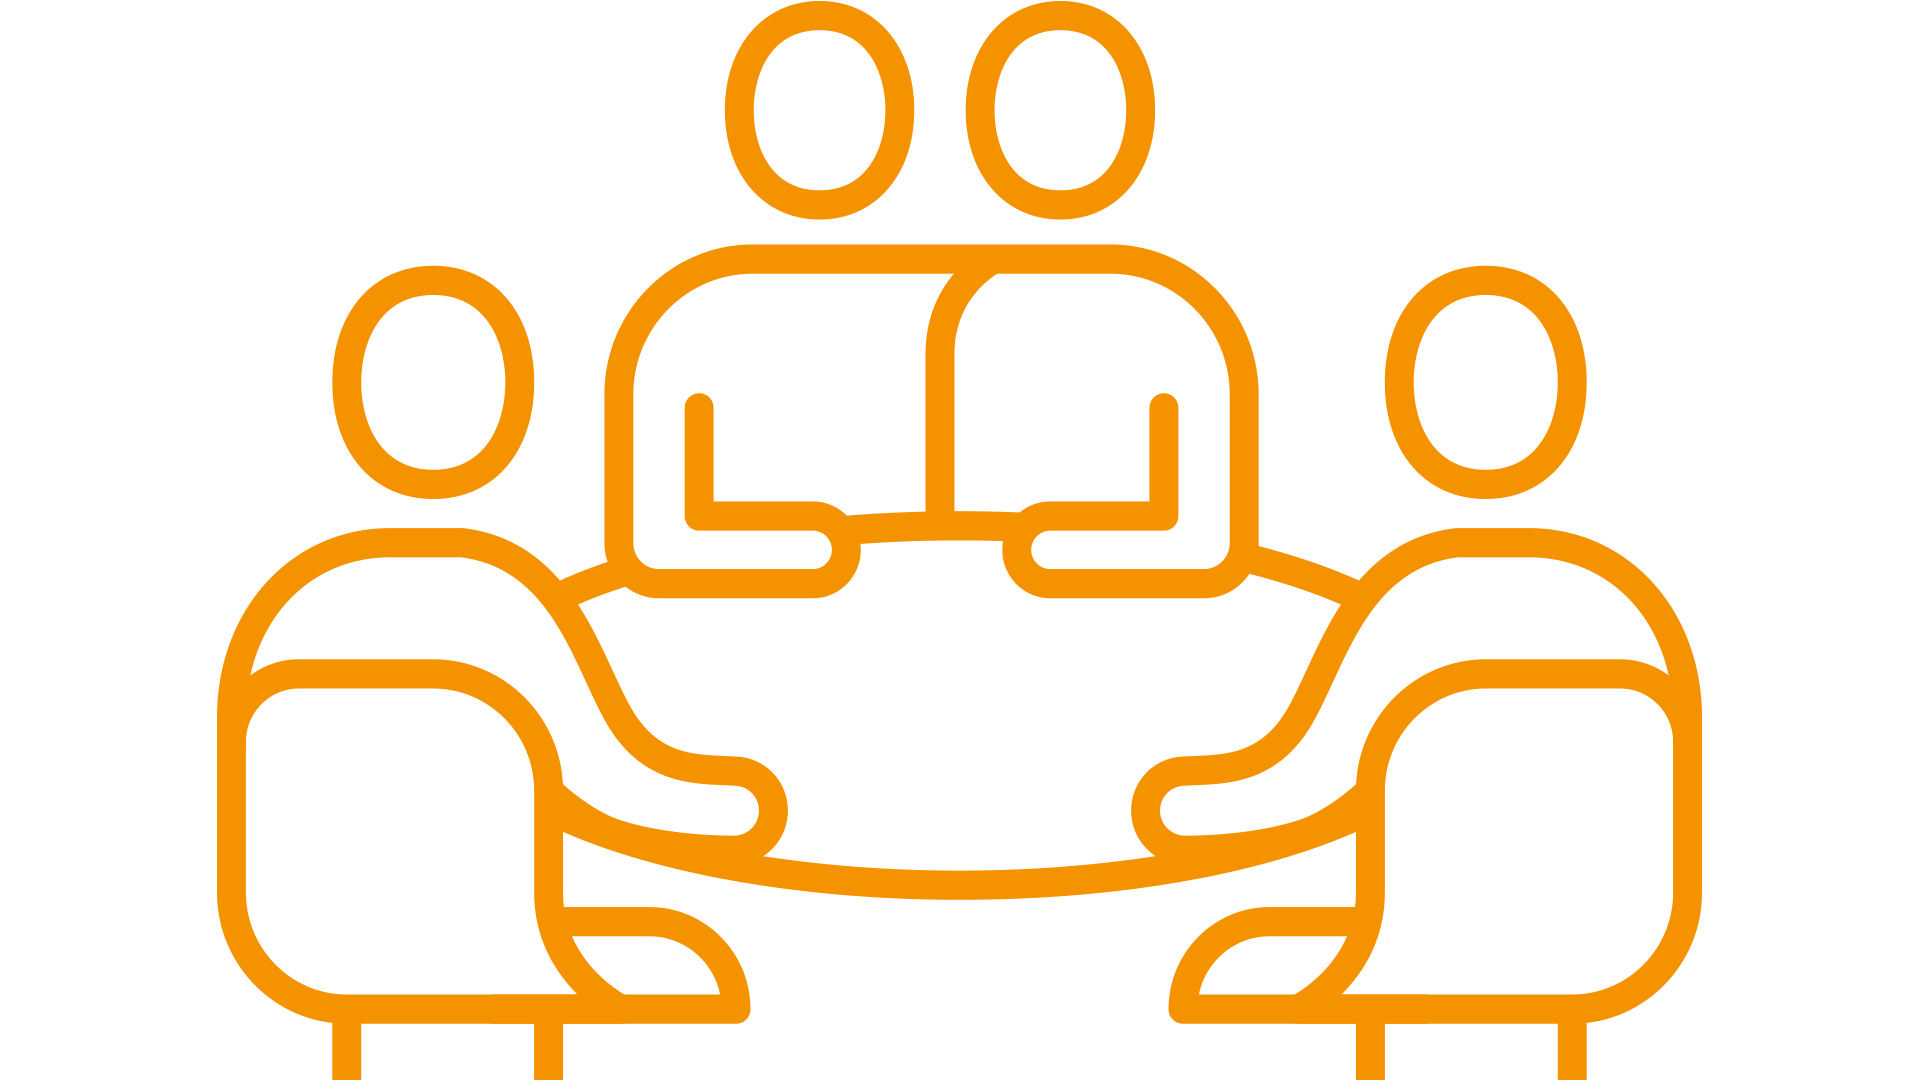 pictogram of people around a table